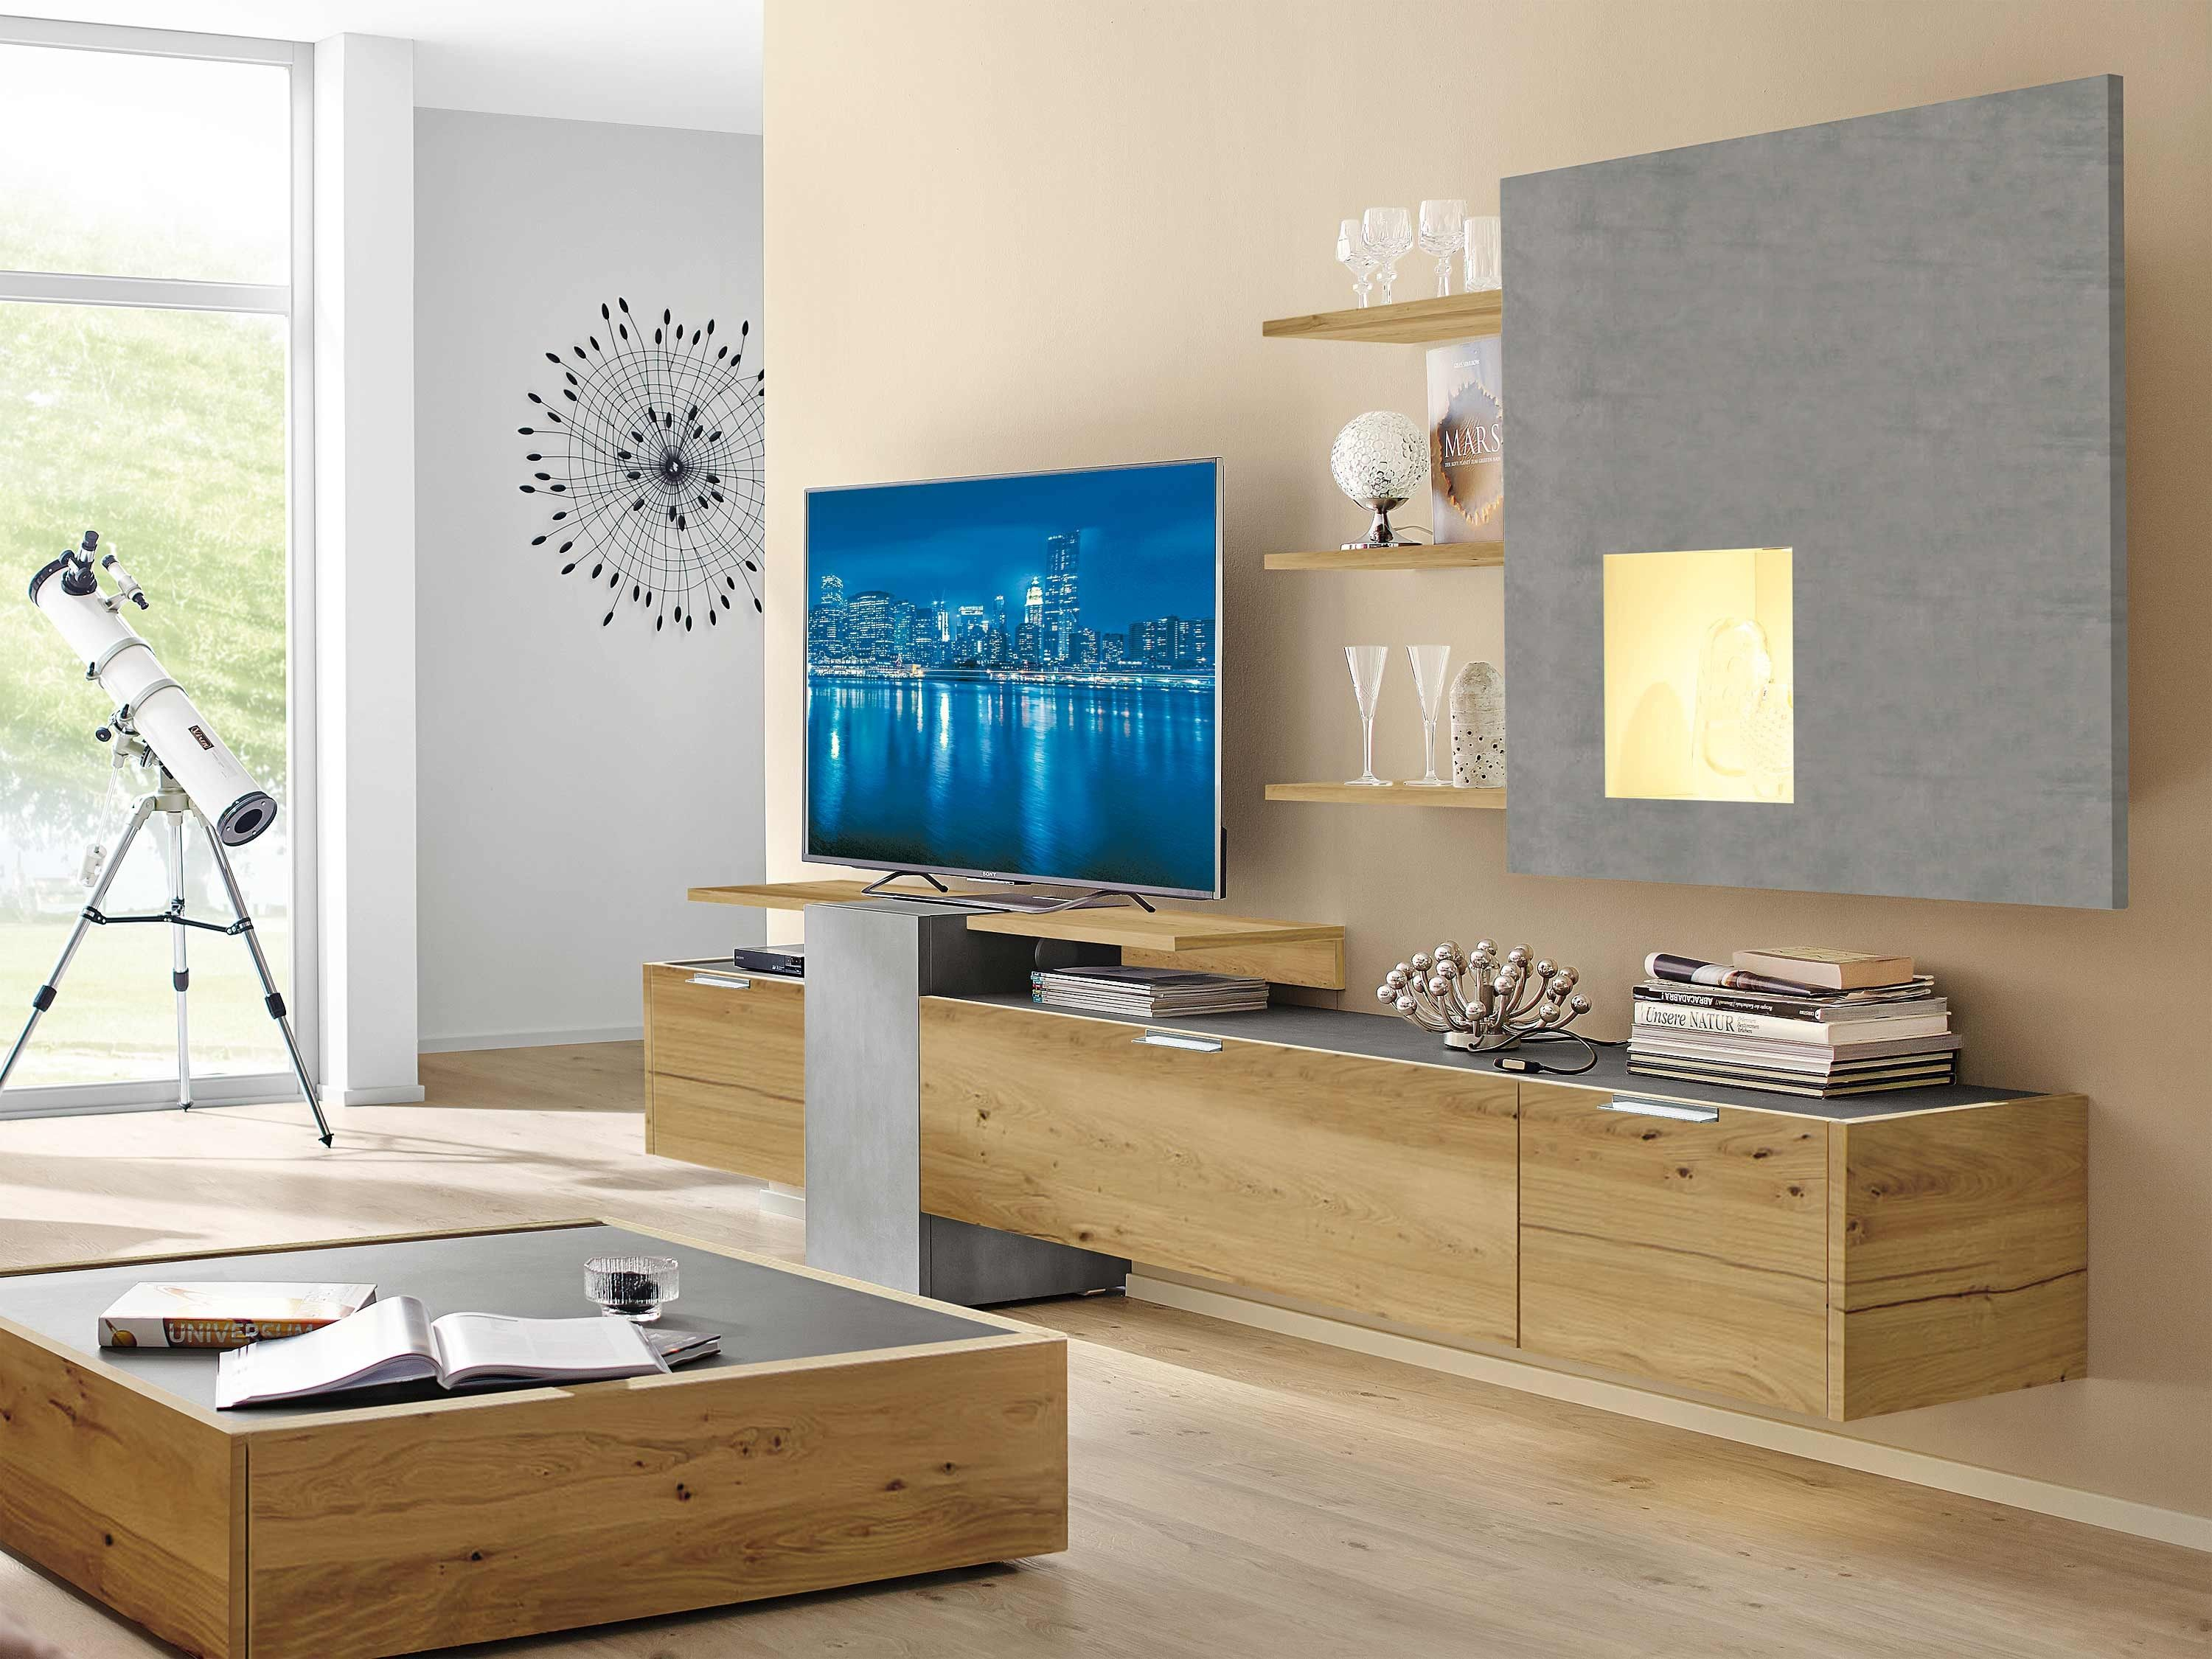 wohnwand h lsta fena in 2019 wohnzimmer tv m bel lowboard lowboard h ngend und h lsta. Black Bedroom Furniture Sets. Home Design Ideas